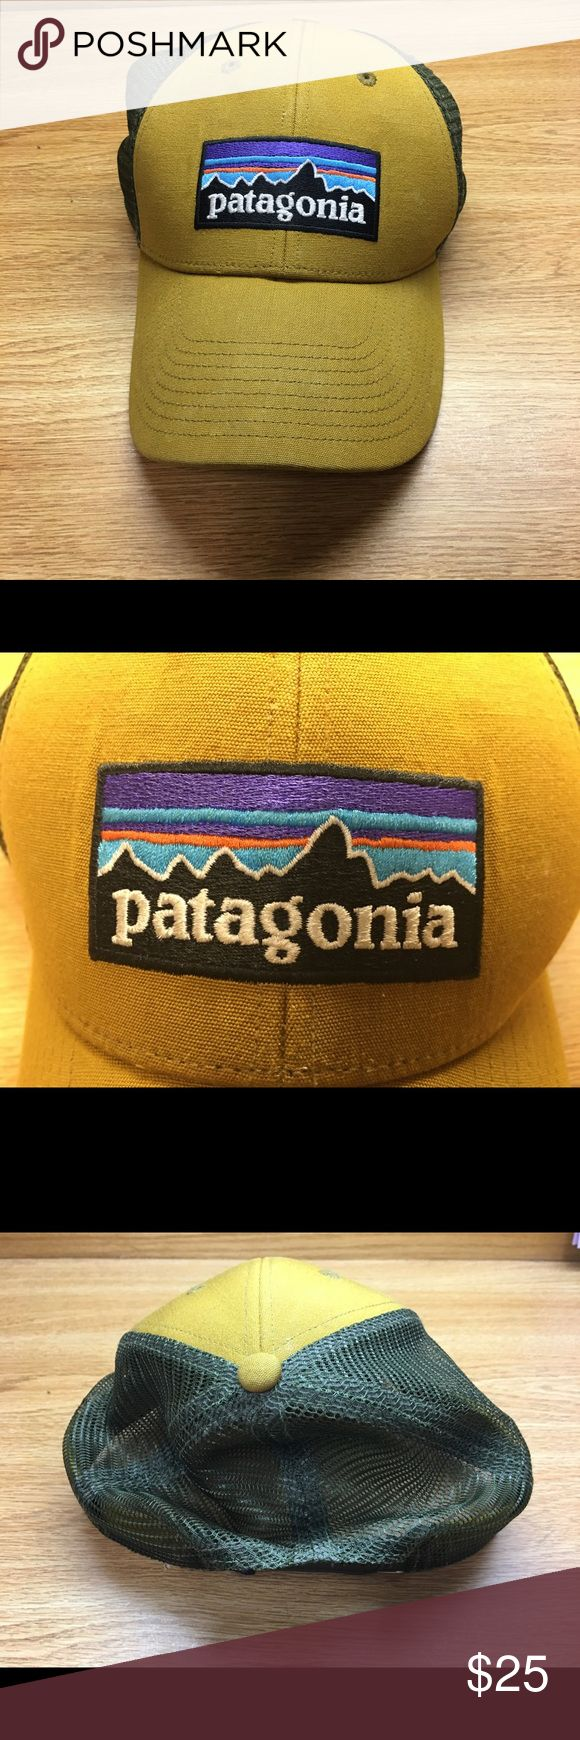 Patagonia Snapback LoPro Tan, Green, one size fits all Patagonia Accessories Hats